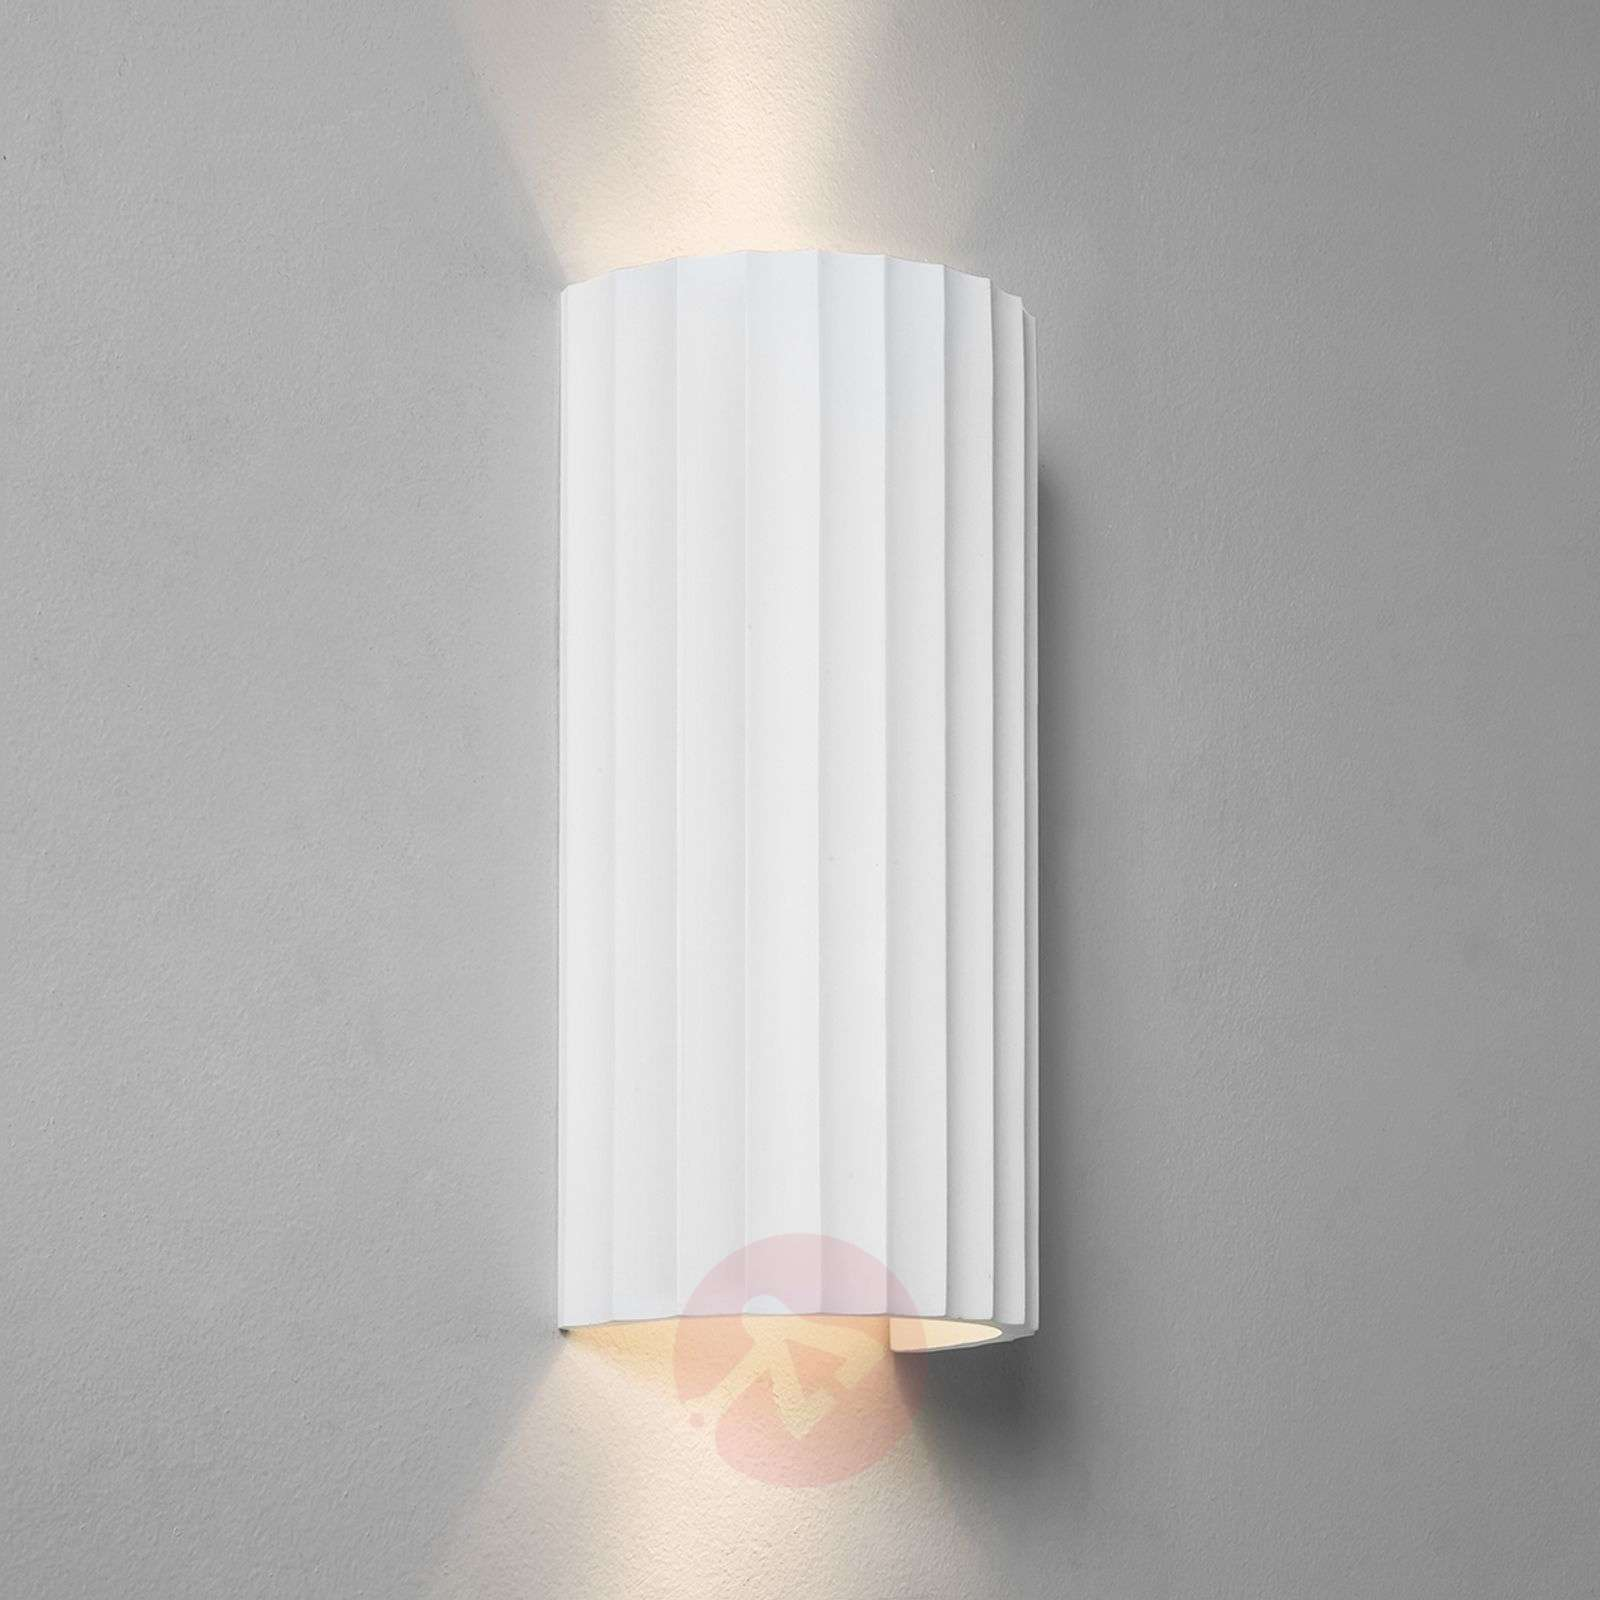 Kymi 300 Wall Light Plaster-1020503-03